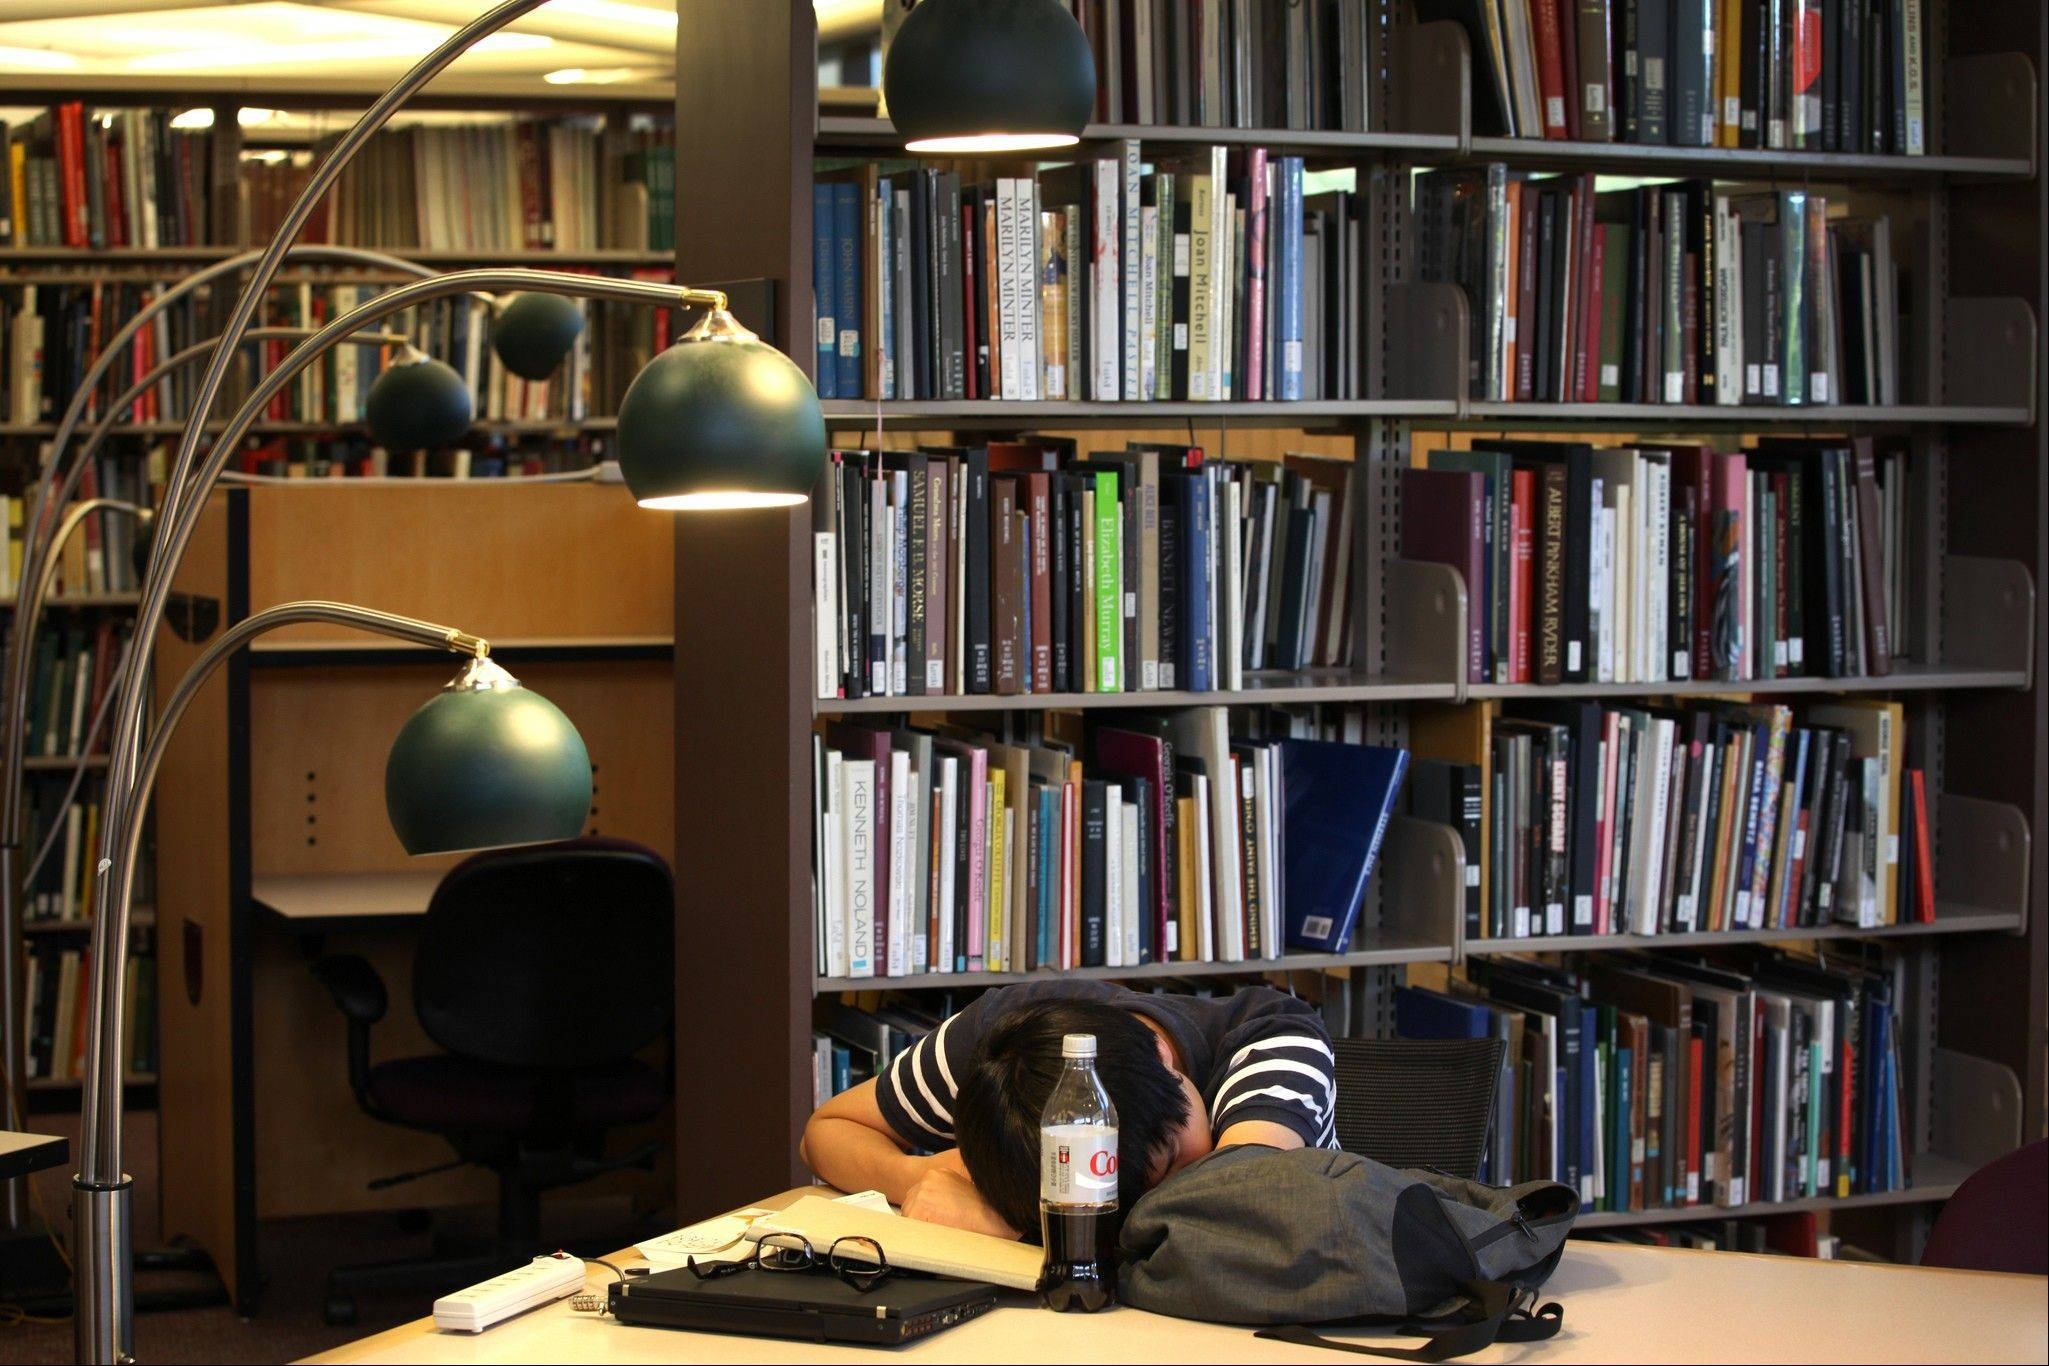 Taewon Kim, an electrical engineering systems graduate student, sleeps in the library at the Duderstandt Center on the campus of the University of Michigan, in Ann Arbor, Mich. As college students return to campus in the coming weeks, they'll be showered in the usual handouts of coupons, condoms, and credit cards. But some schools are also giving students what a growing body of research reveals could make a huge difference in their college careers: ear plugs, sleep shades and napping lessons.